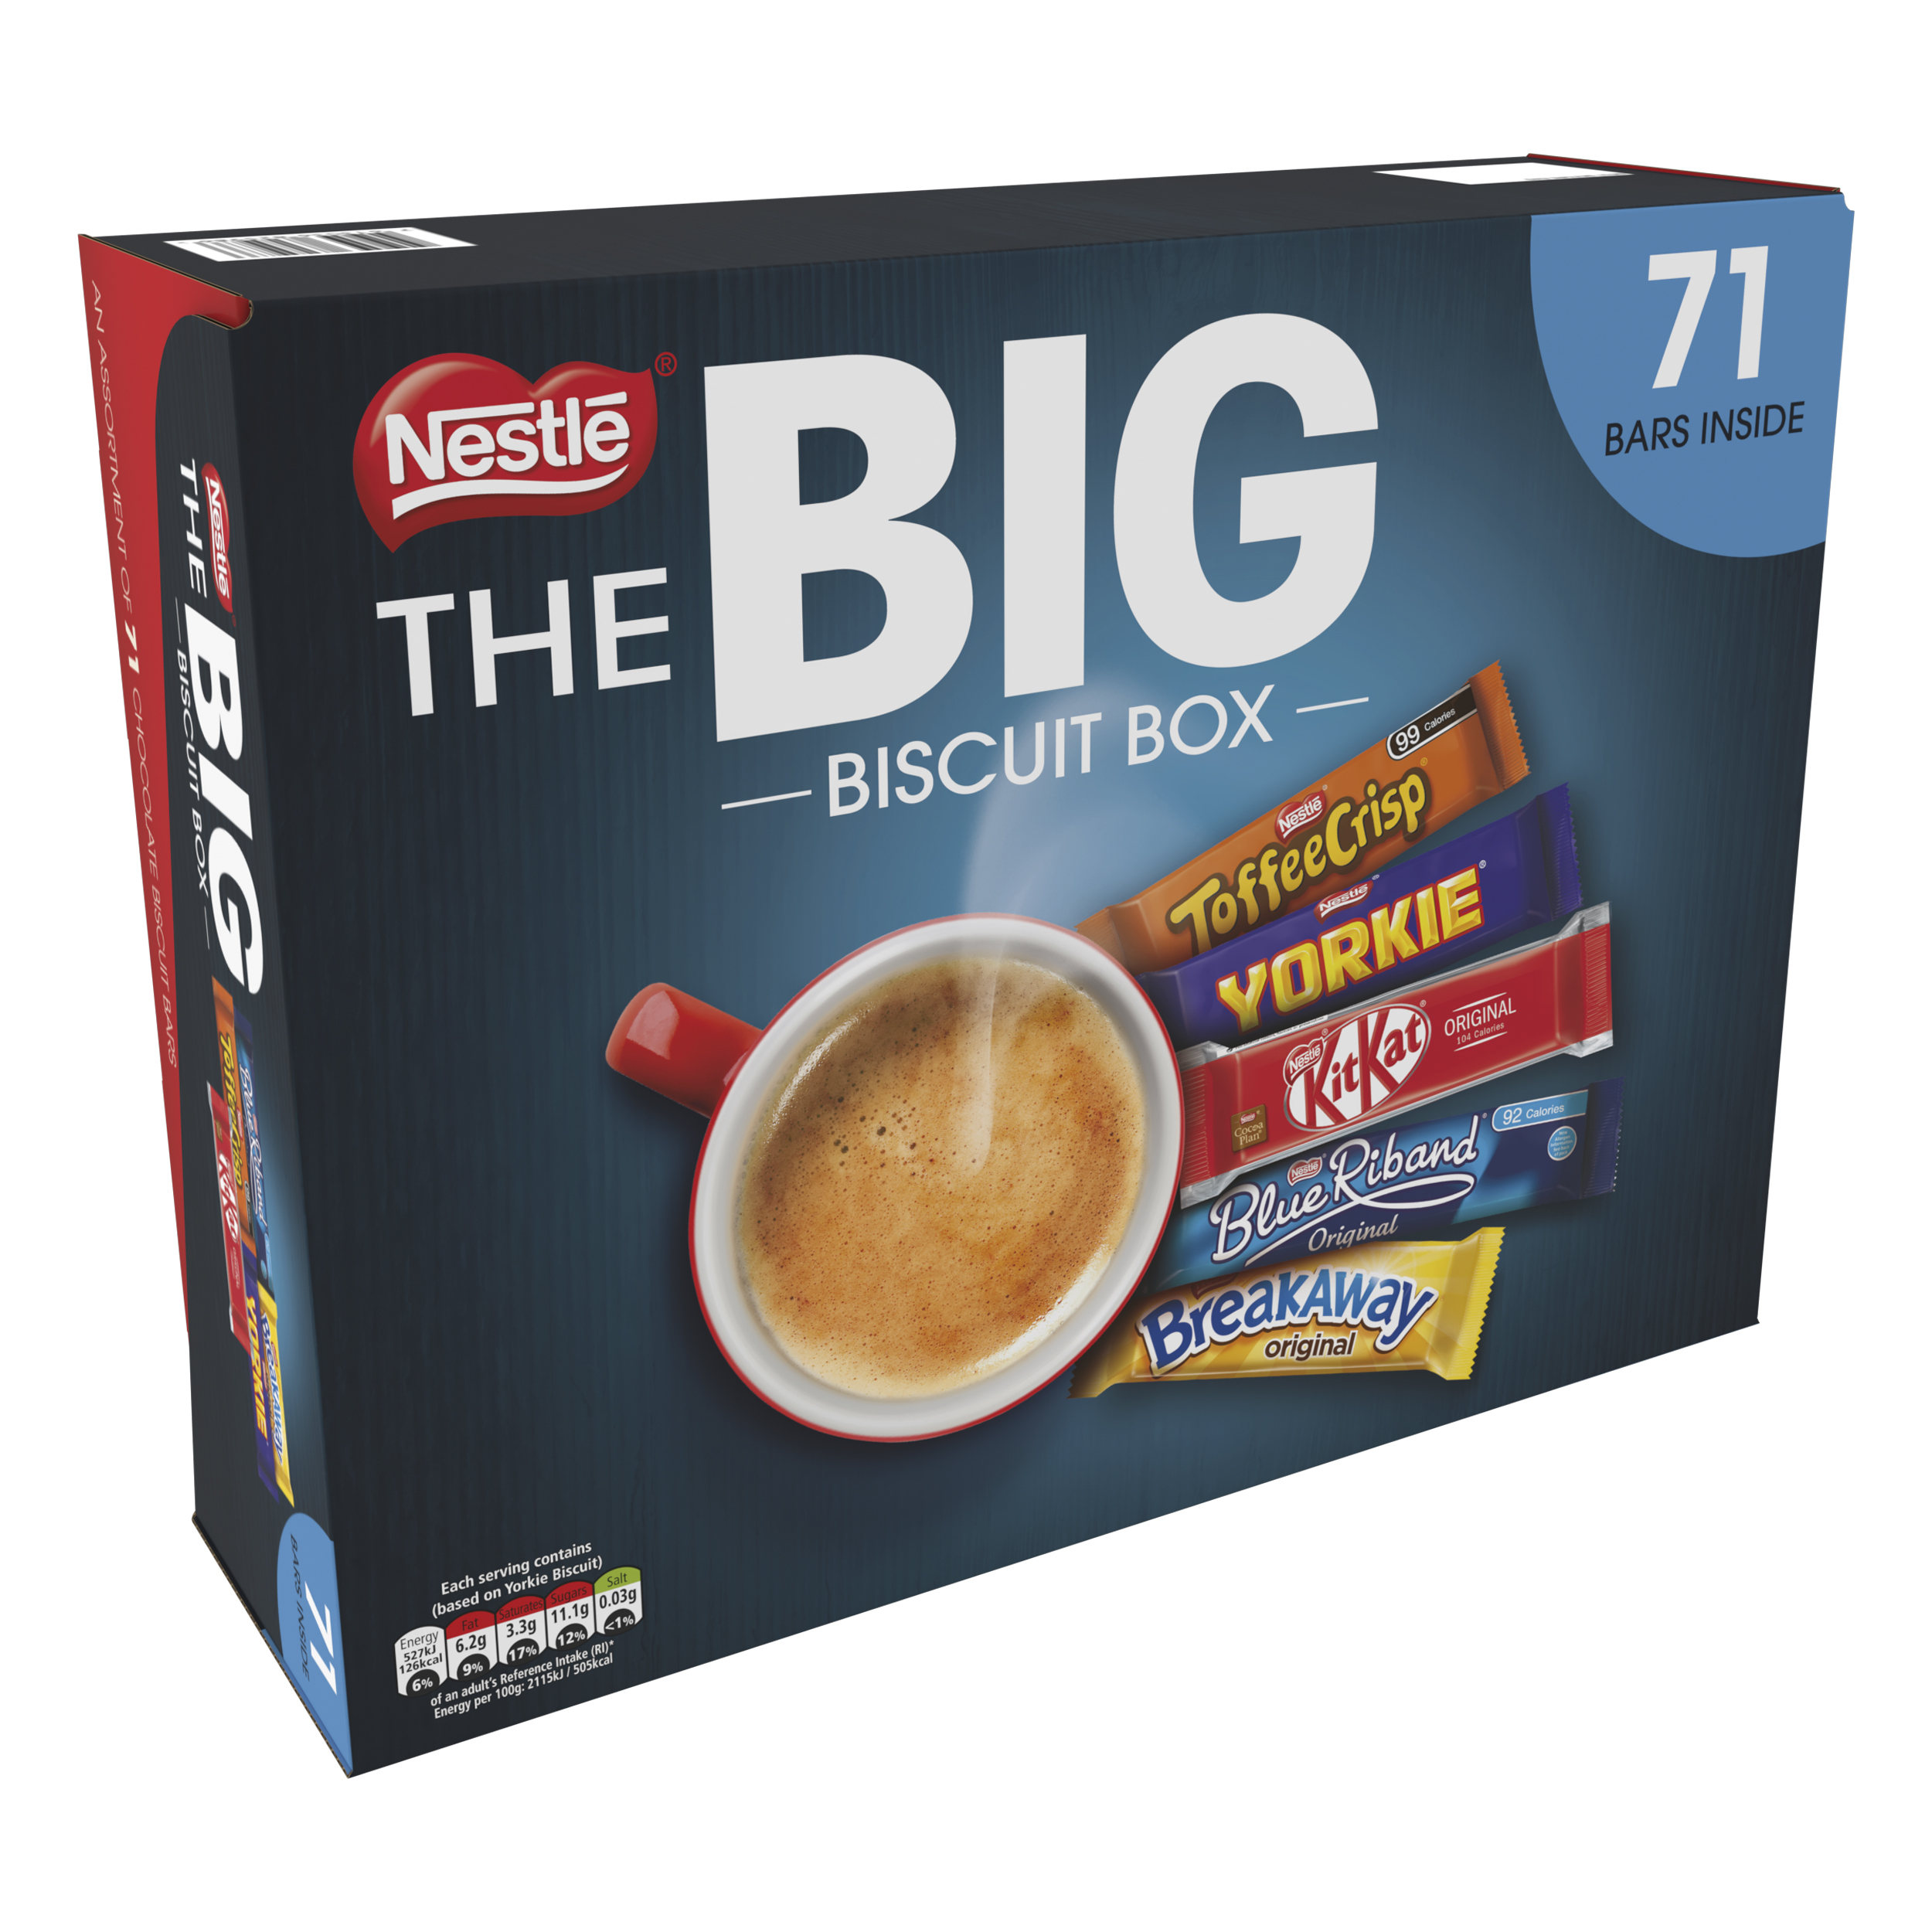 Sweet biscuits or cookies Nestle Big Chocolate Box Five Assorted Biscuit Bars Ref 12391006 Pack 71